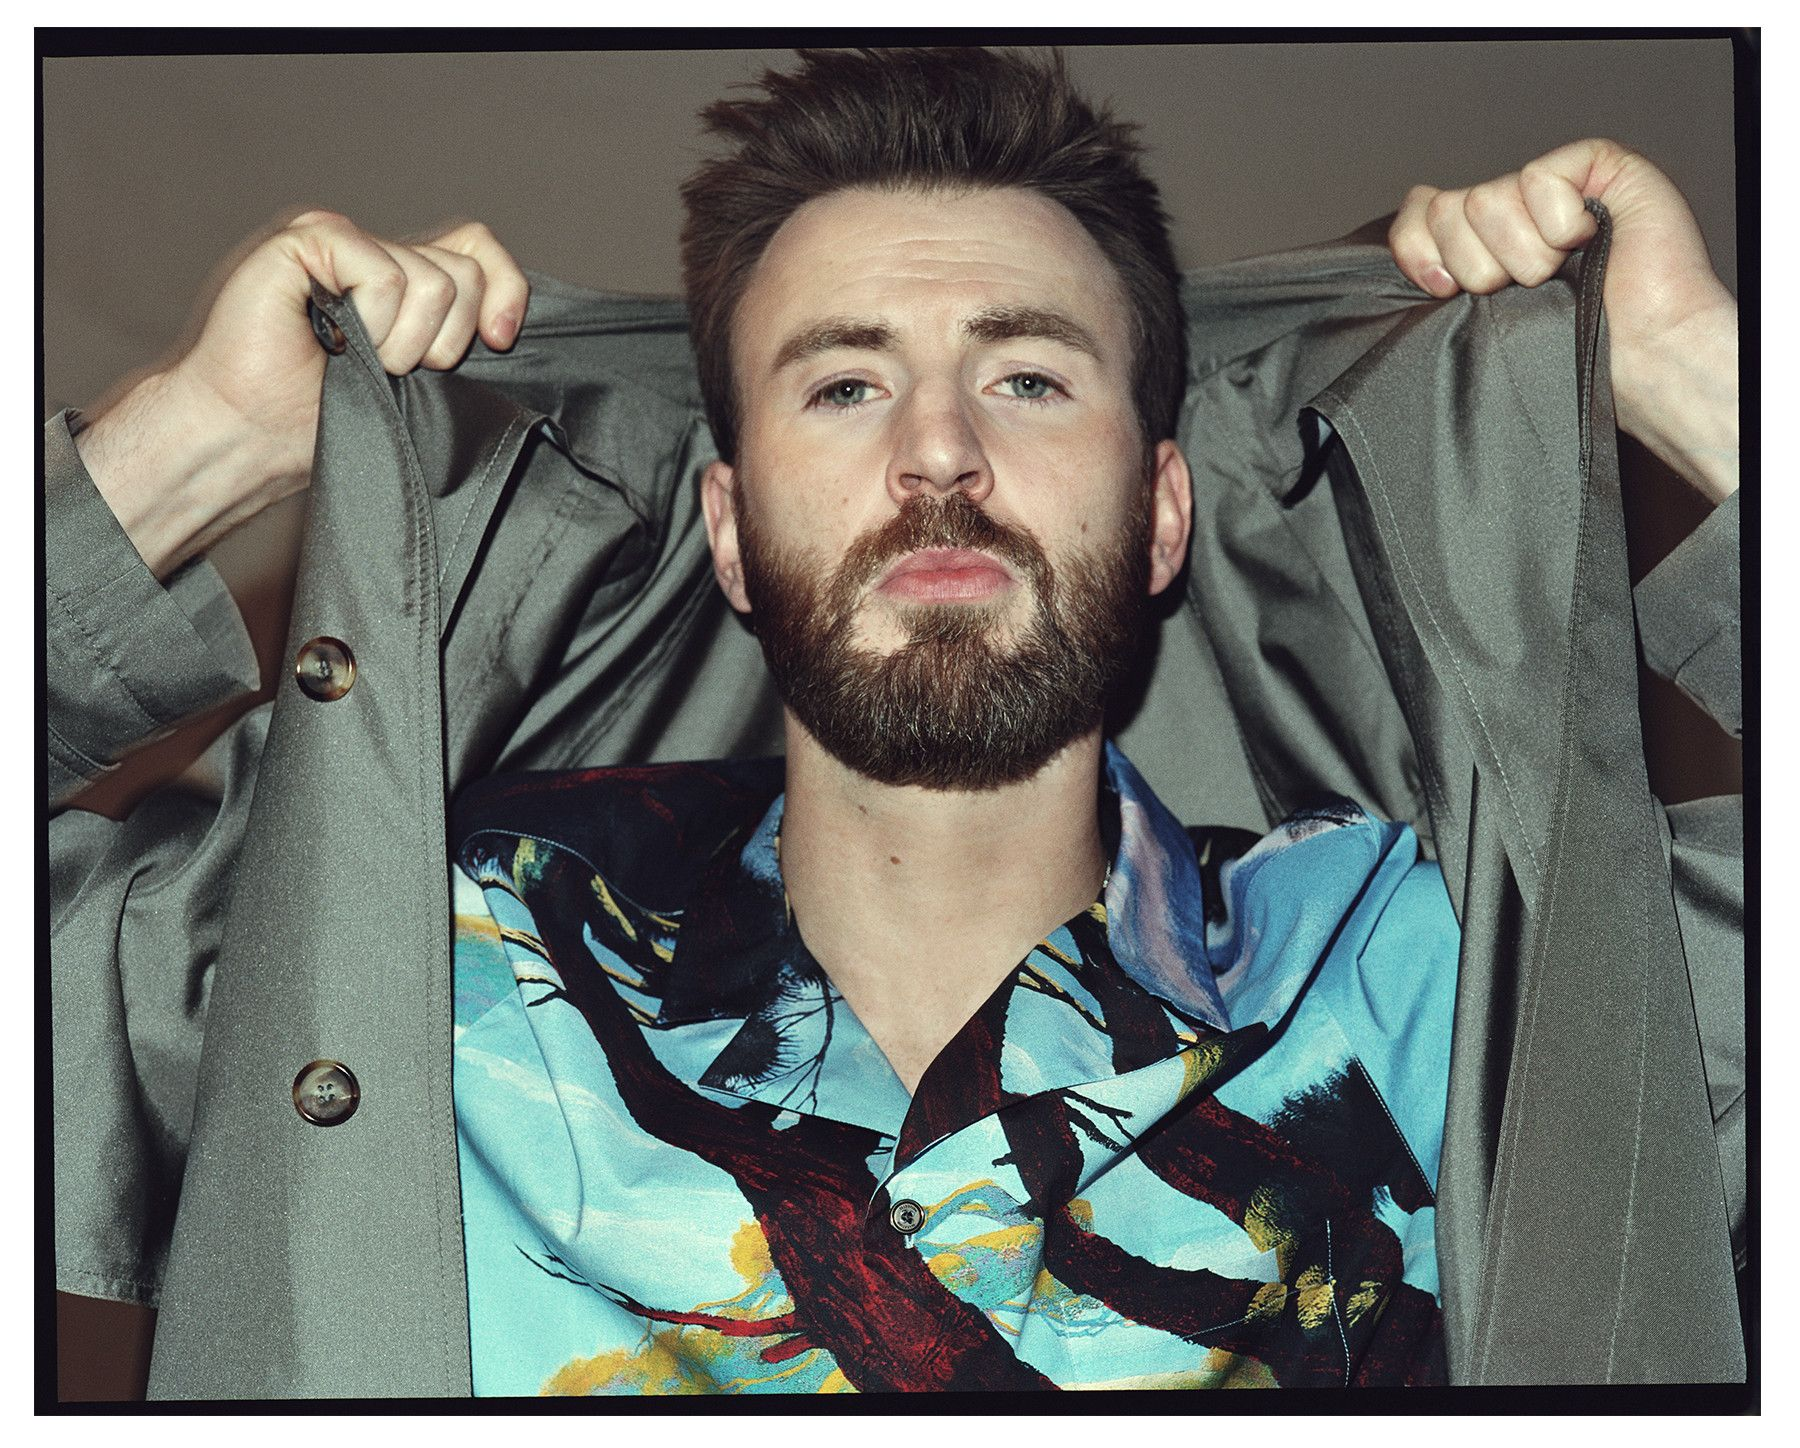 Chris Evans On His New Show Defending Jacob Little Shop Of Horrors And His Family